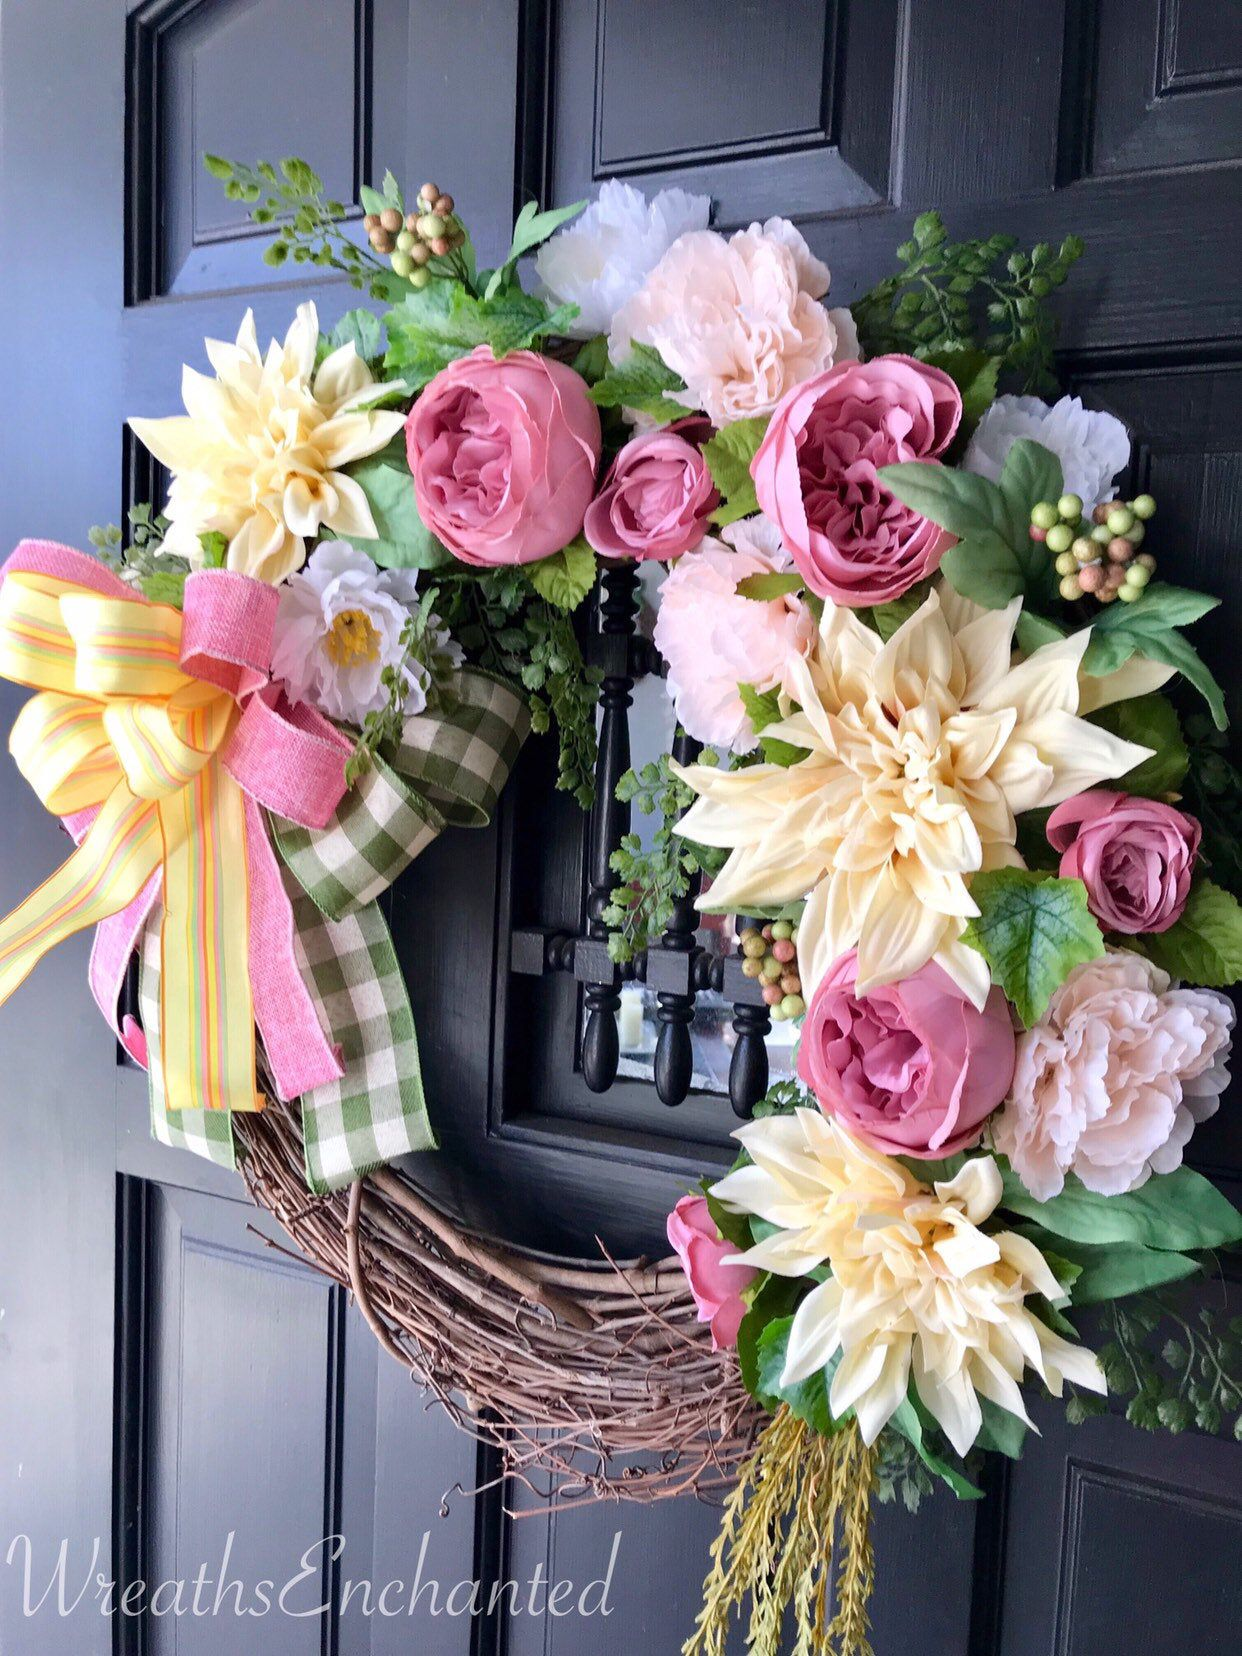 Spring Wreath Front Door Easter Wreath Floral Wreath Pink Yellow Wreath Pastel Wreath Rose Peony Wreath Spring Decor Housewarming Free Ship In 2020 With Images Spring Front Door Wreaths Pastel Wreath